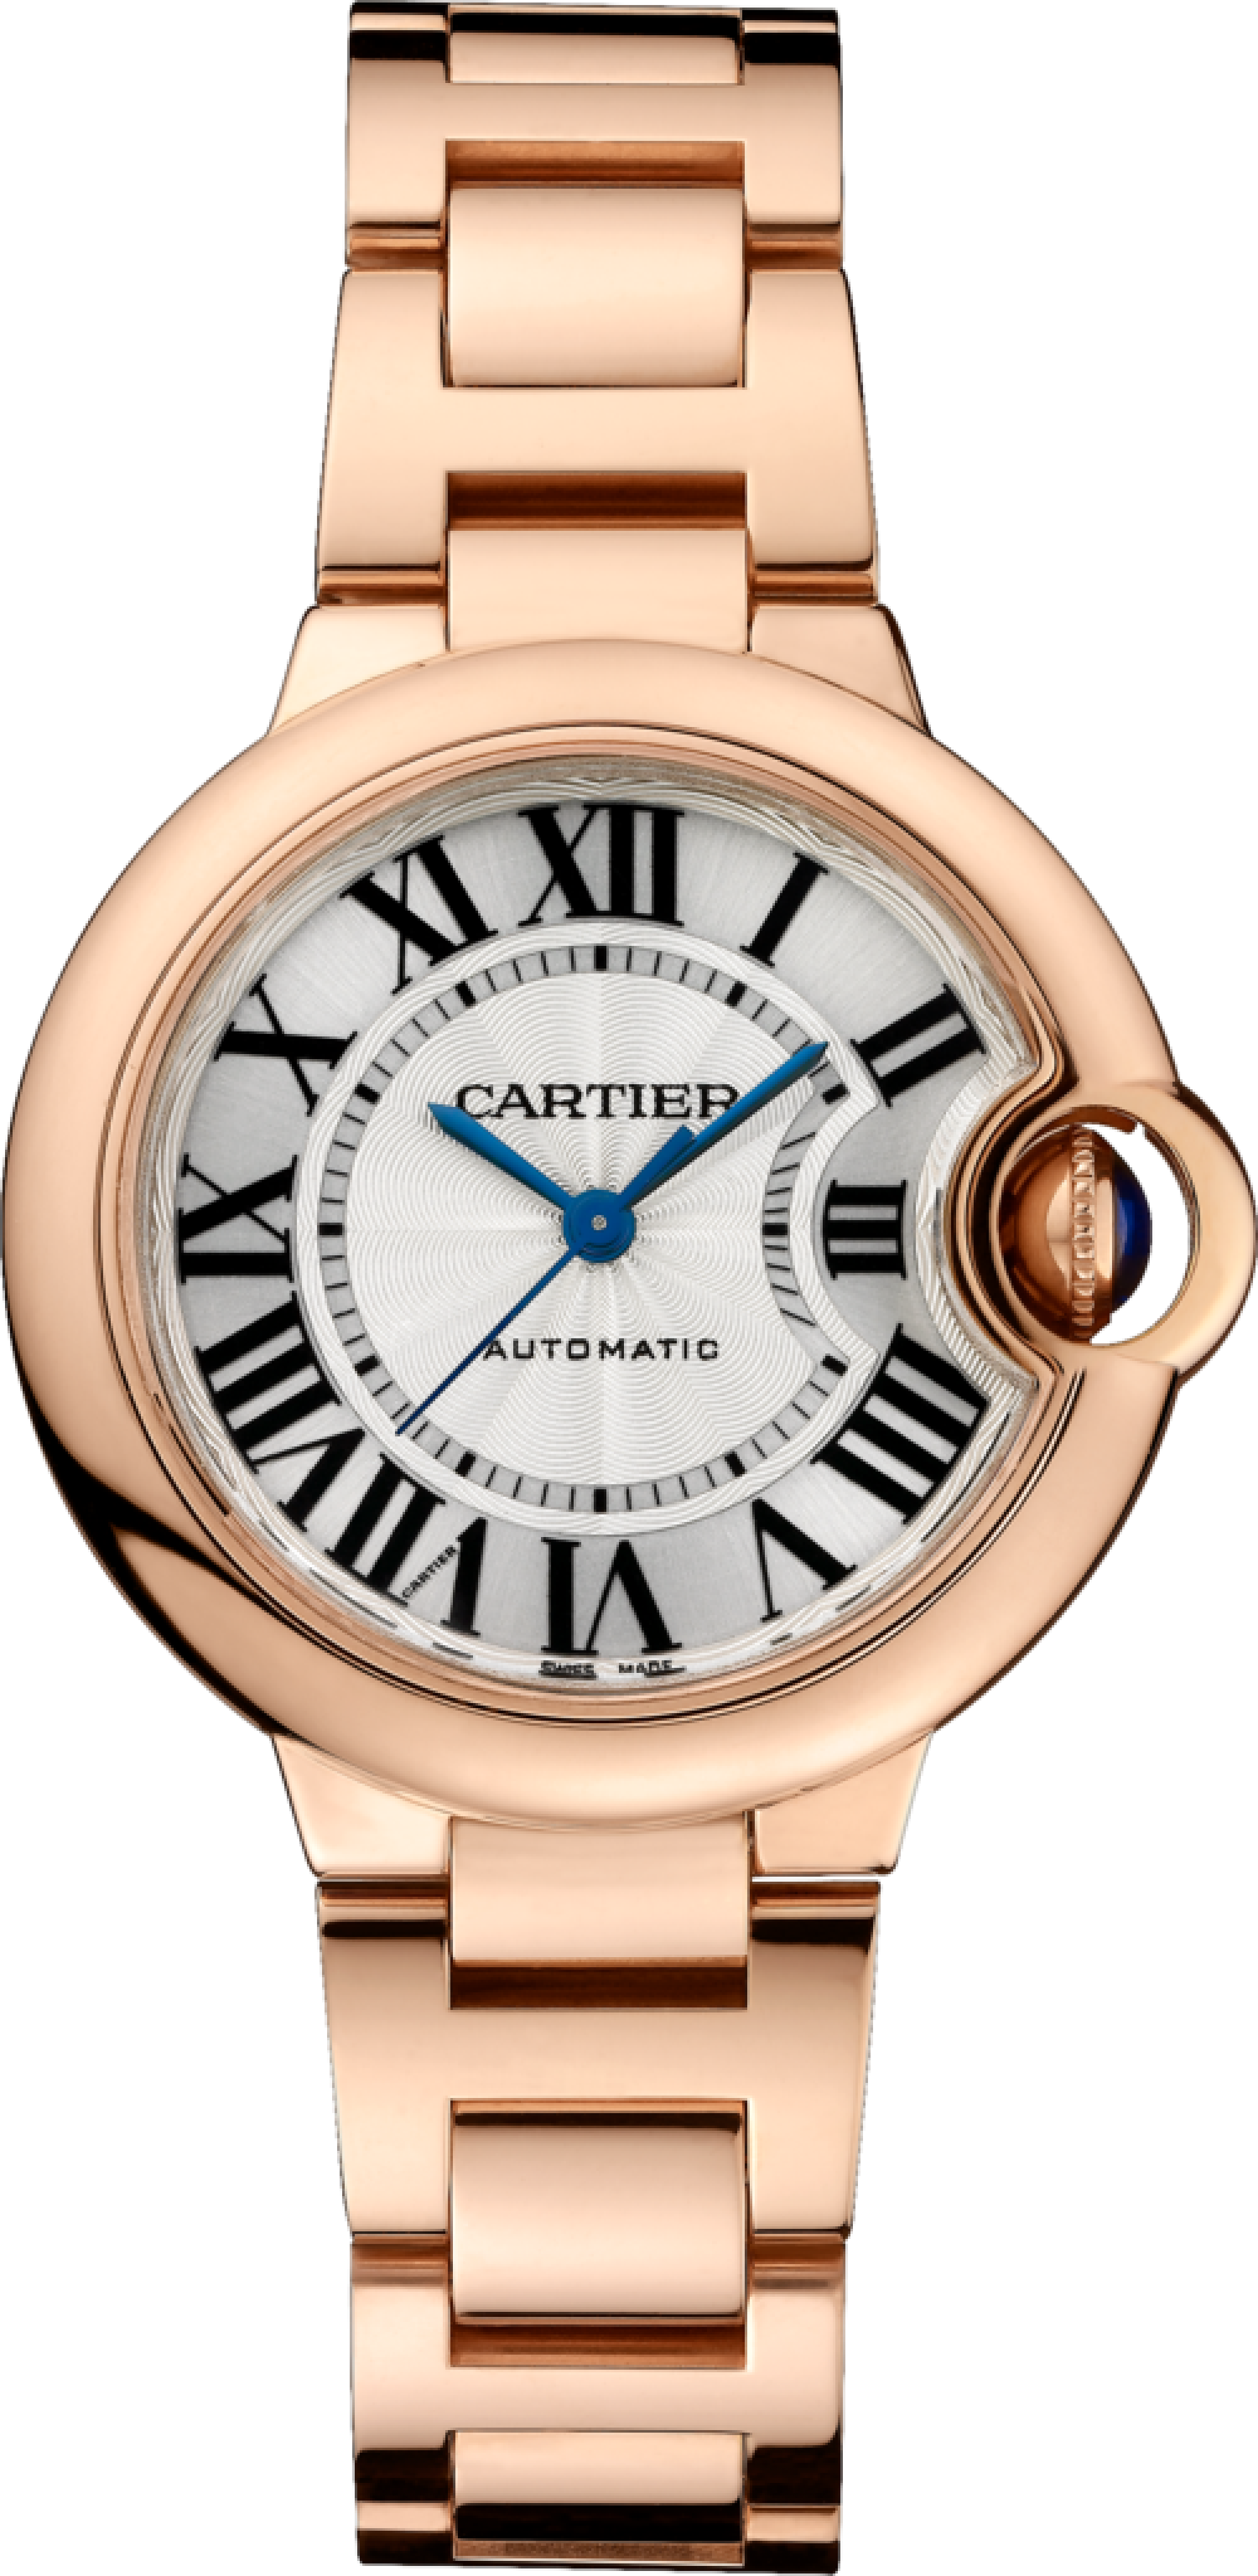 Cartier Ballon Bleu De Cartier W6920096 Rose Gold Watch  468246dd3a6c